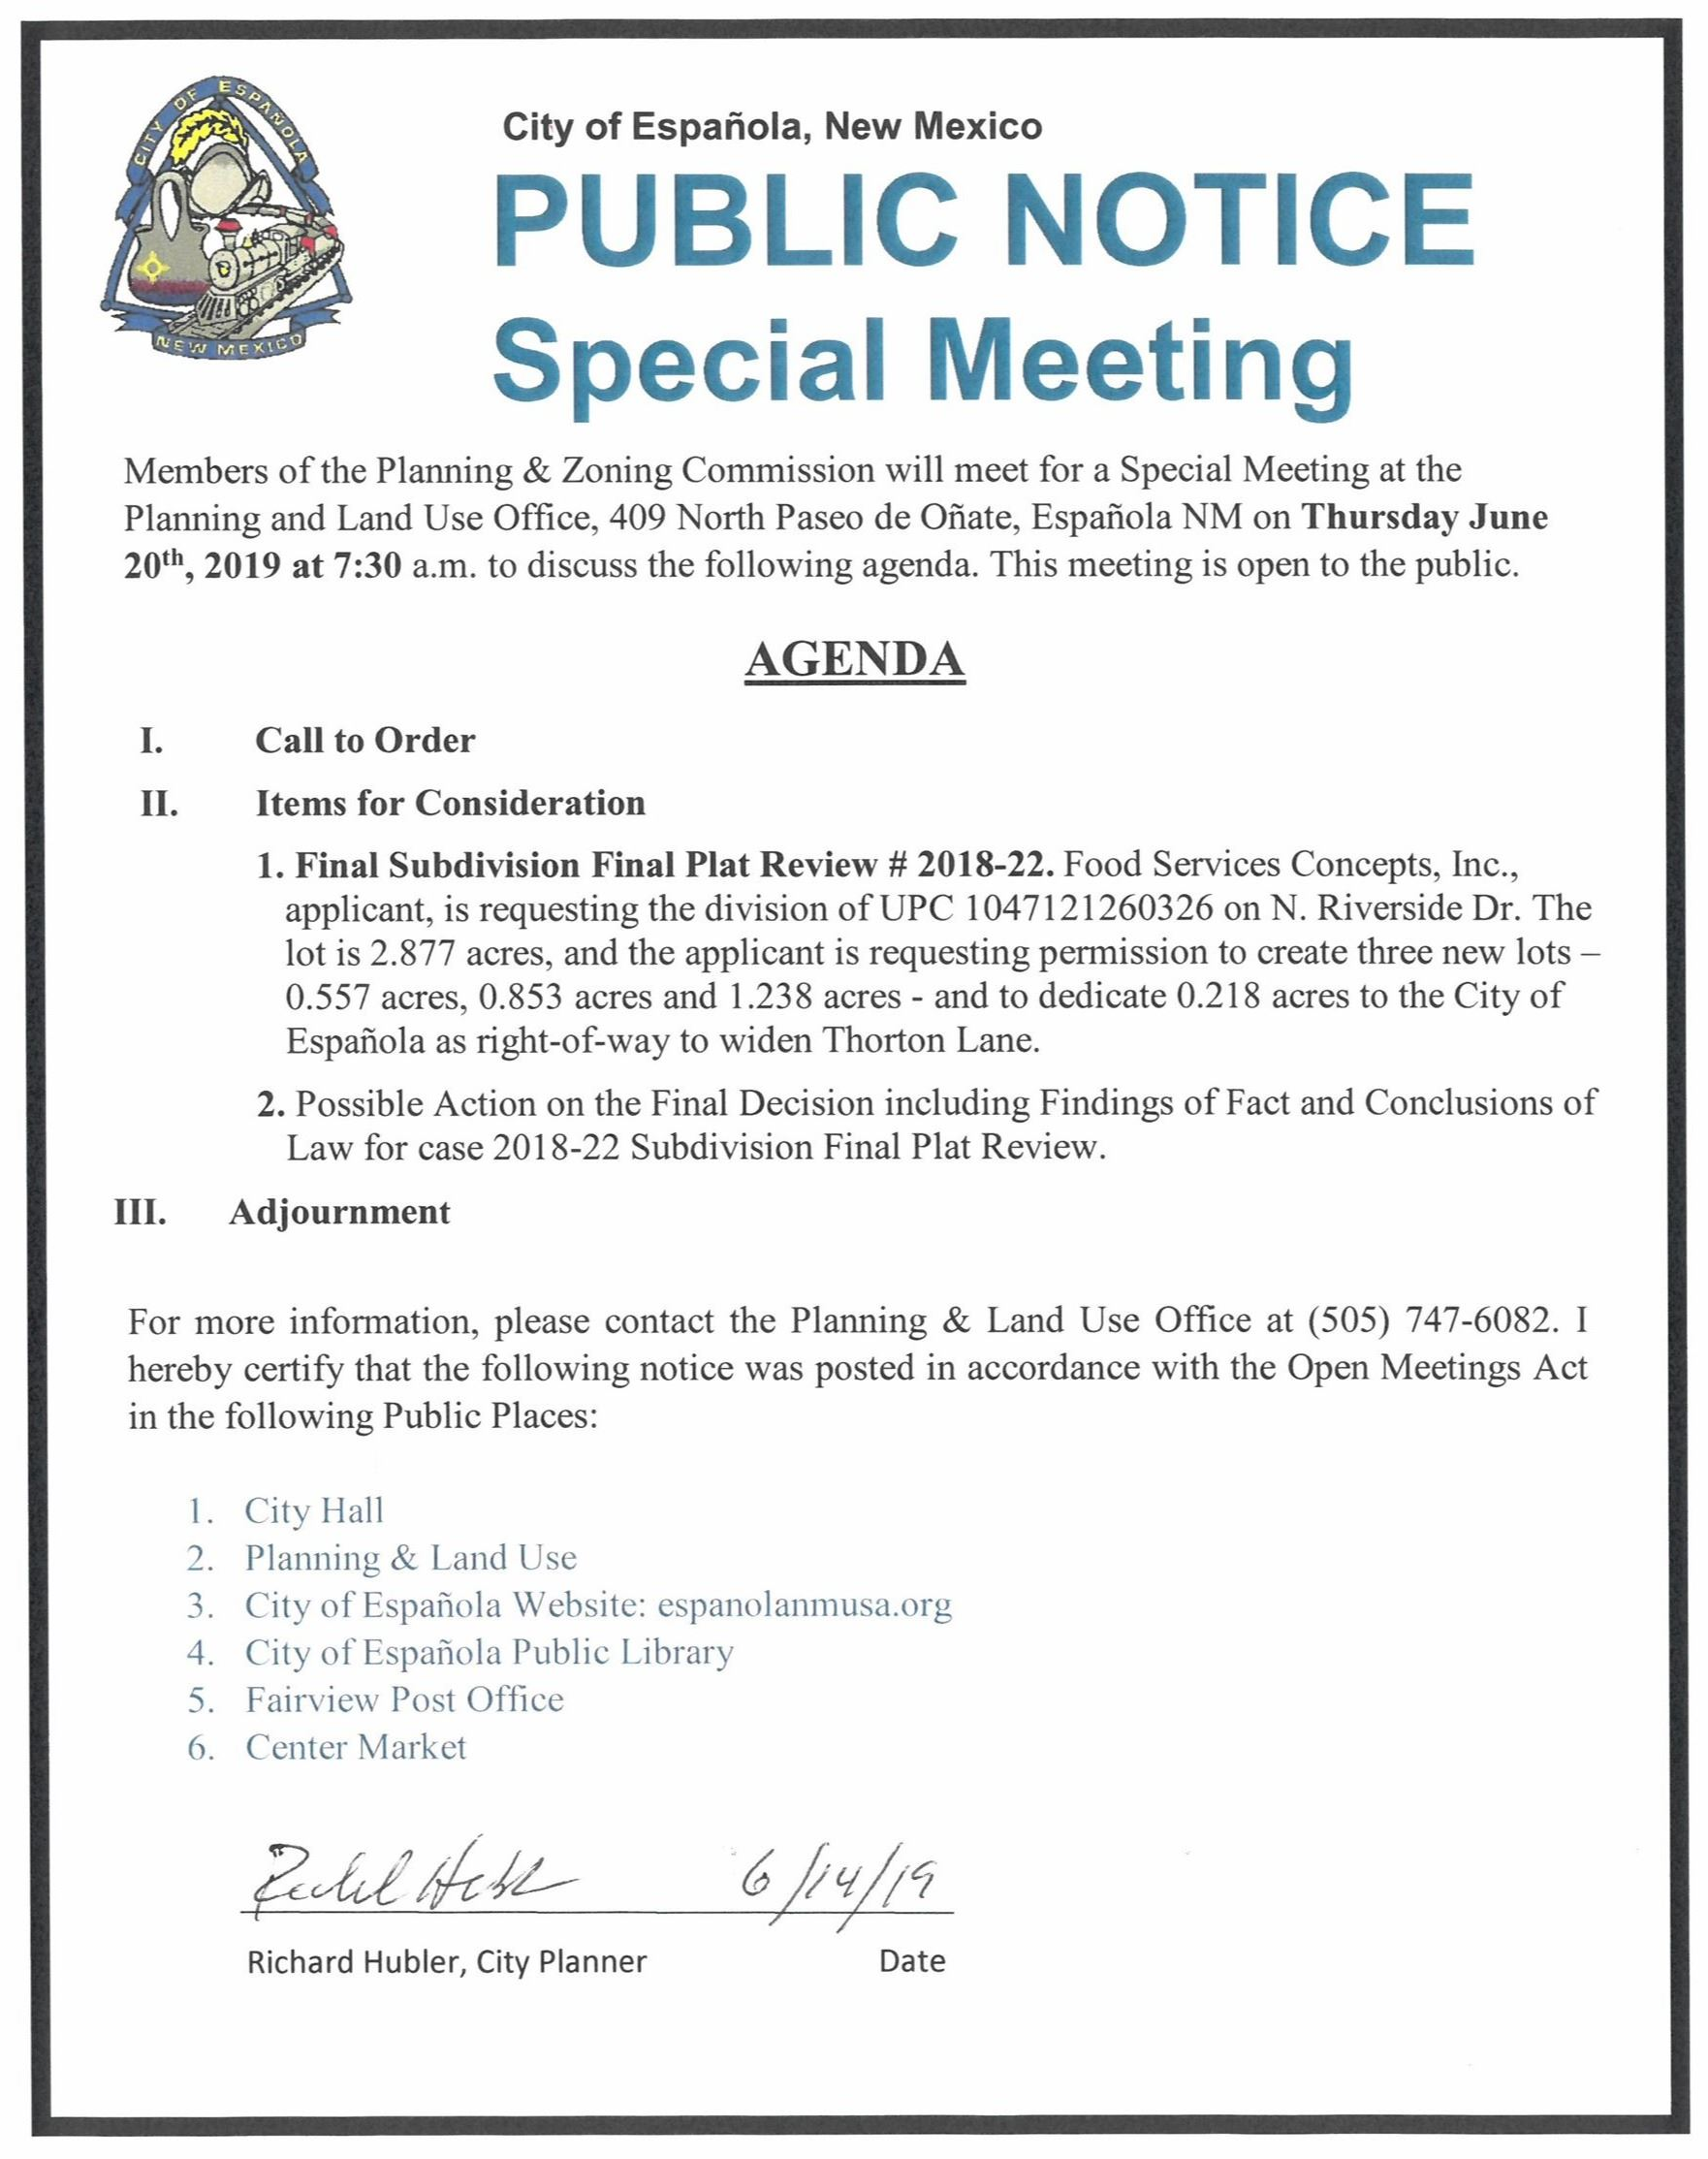 Agenda for the June 20, 2019 Special Meeting of the Planning & Zoning Commission